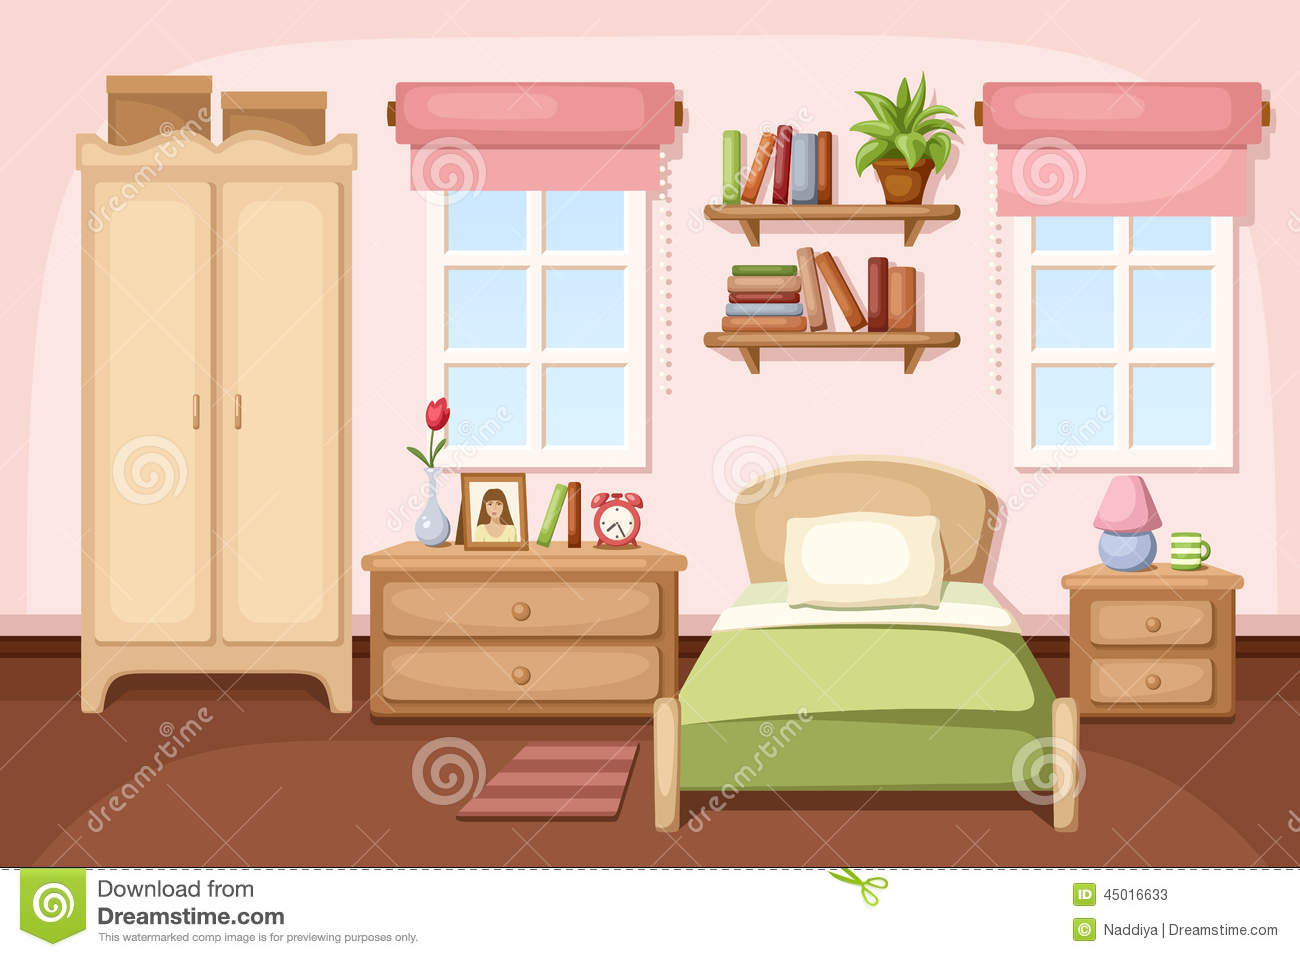 Vector Illustration Of A Bedroom Interior With A Bed Nightstands A